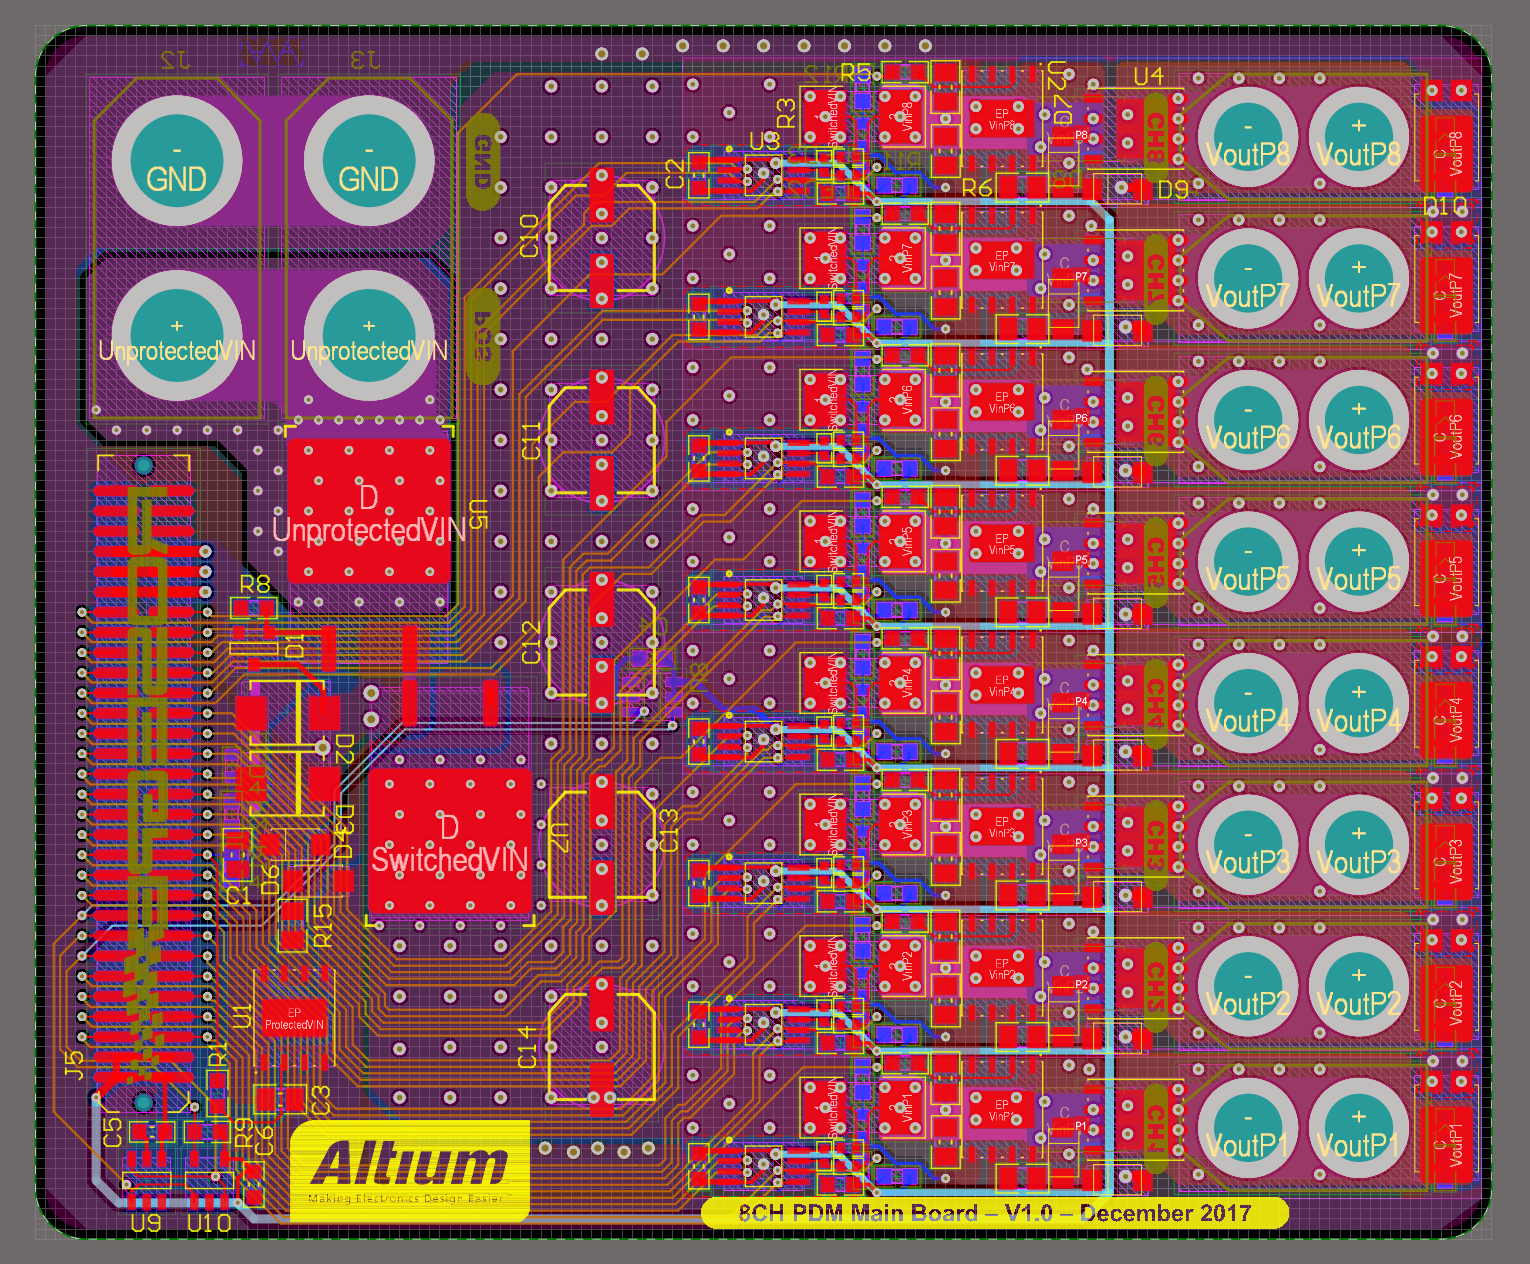 Main Board Design in Altium